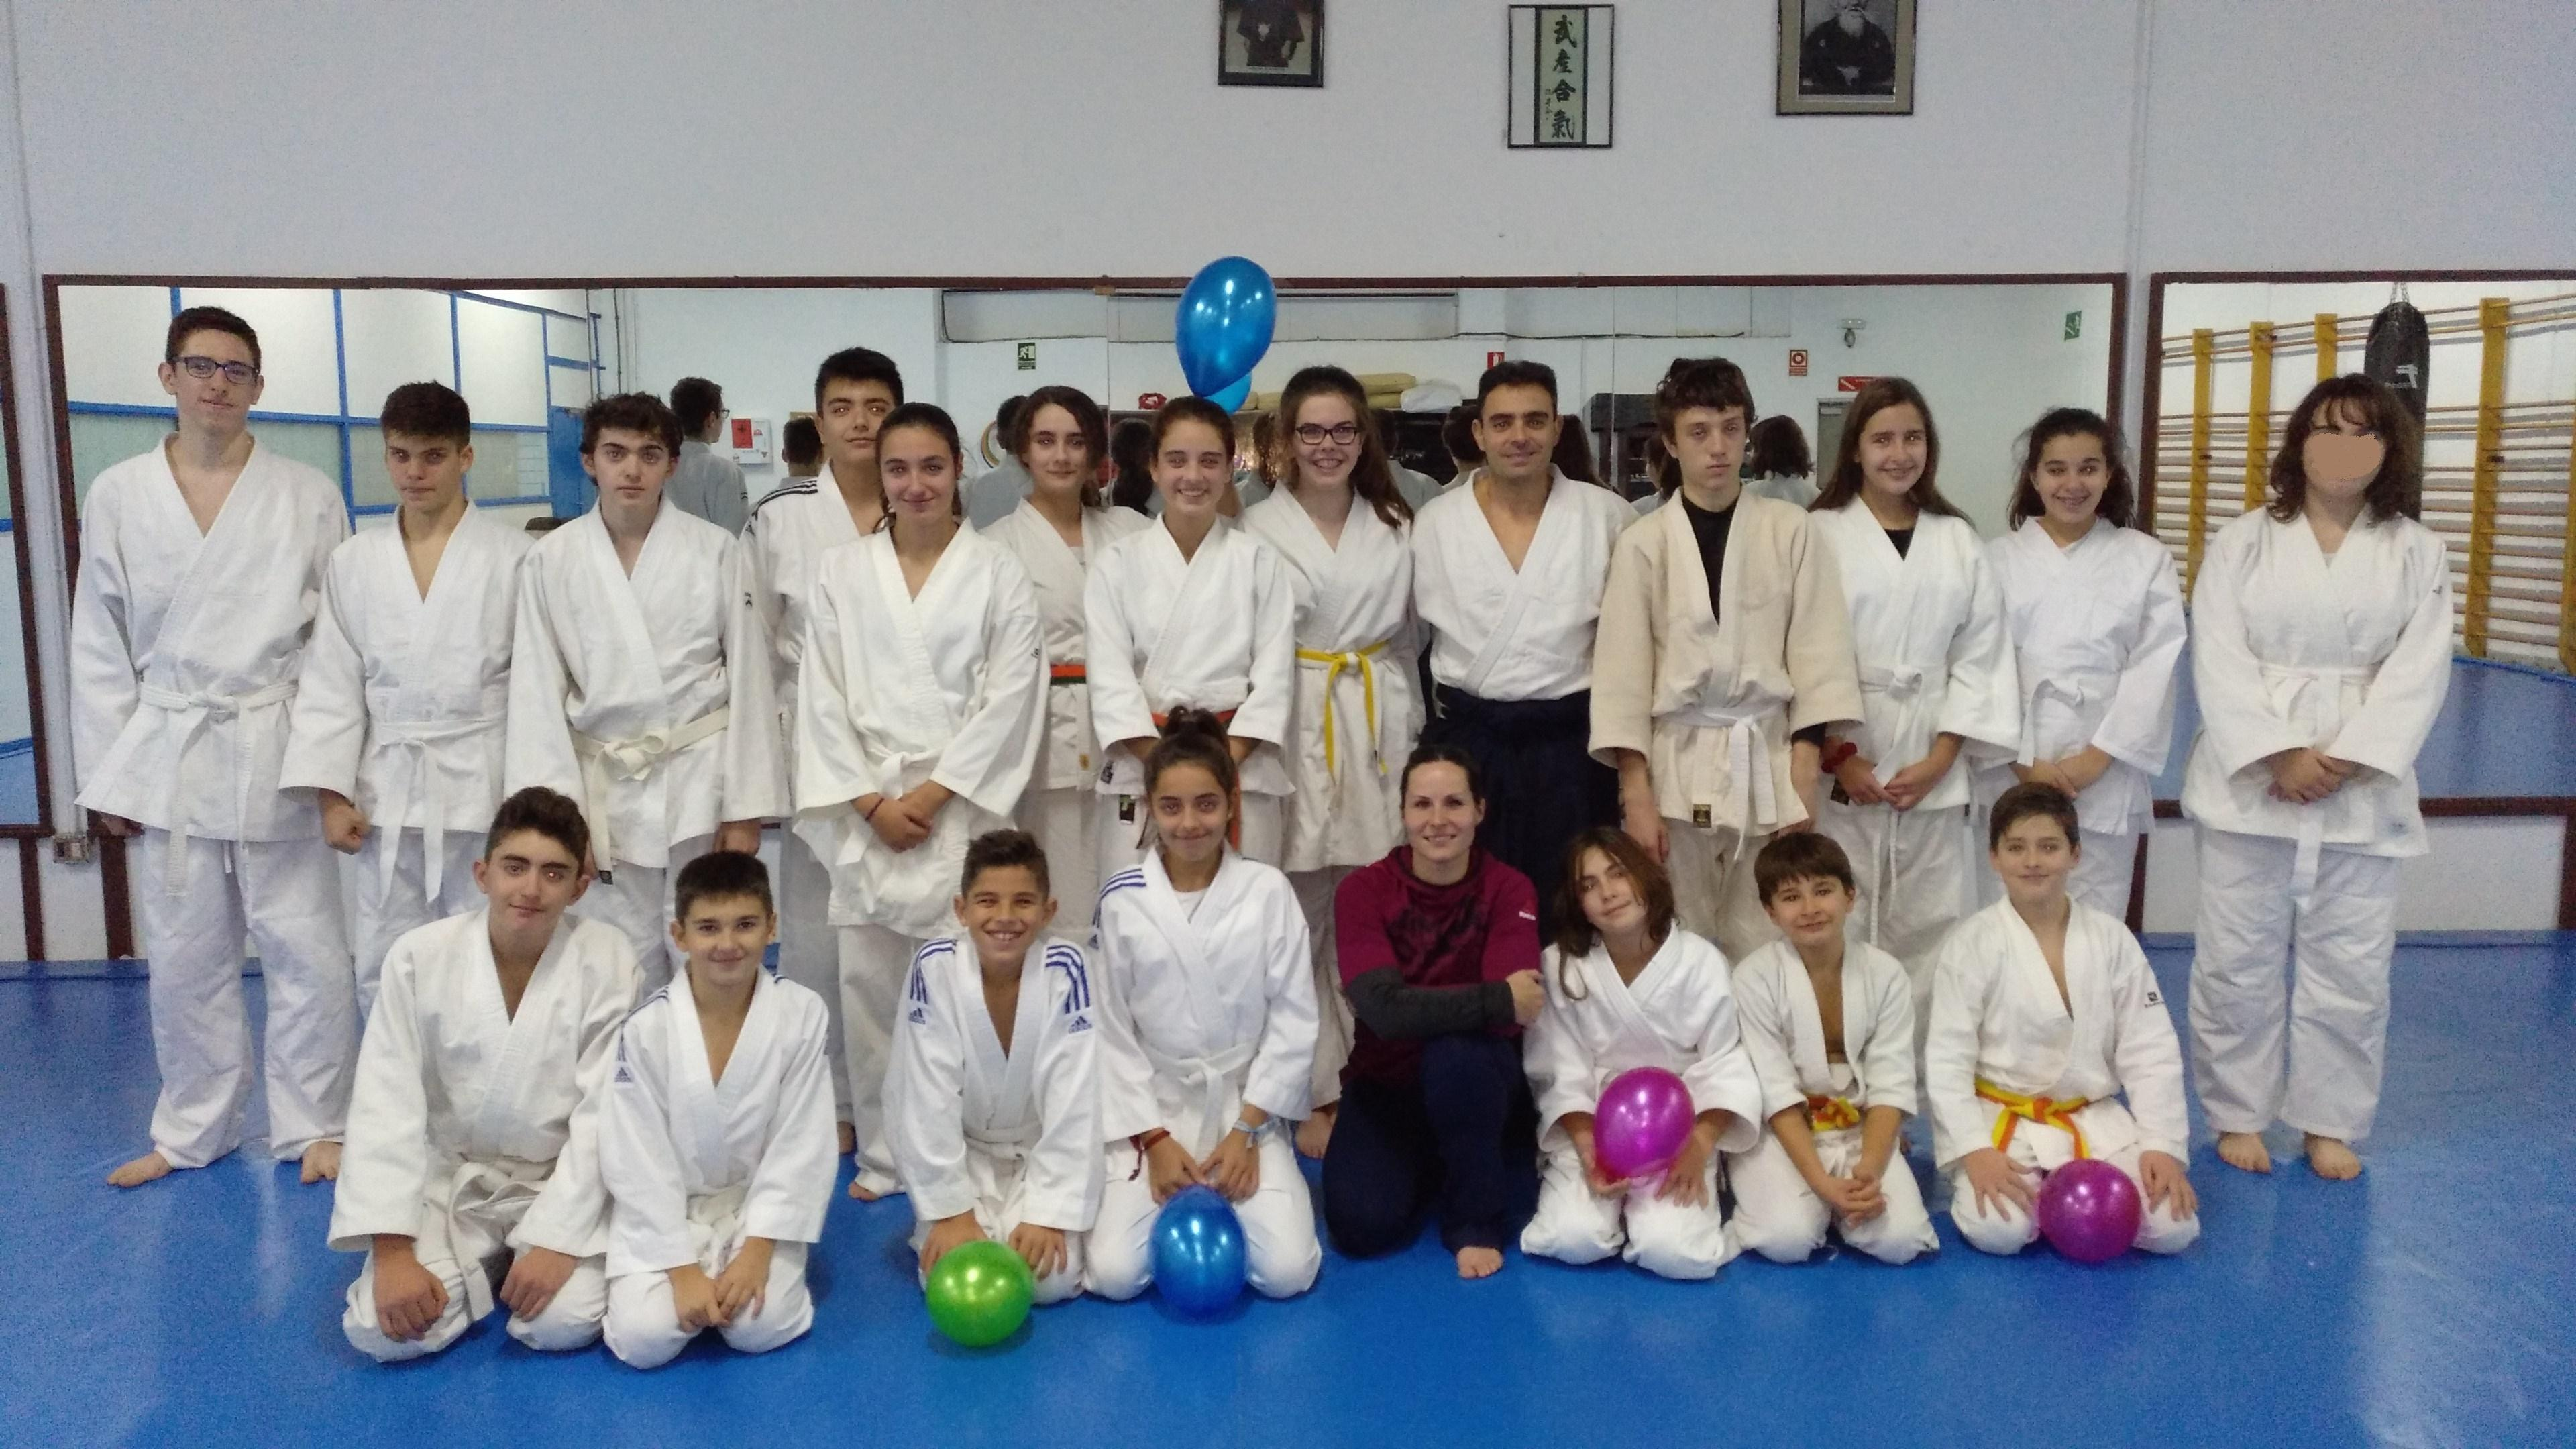 Noticia: AIKIDO INFANTIL